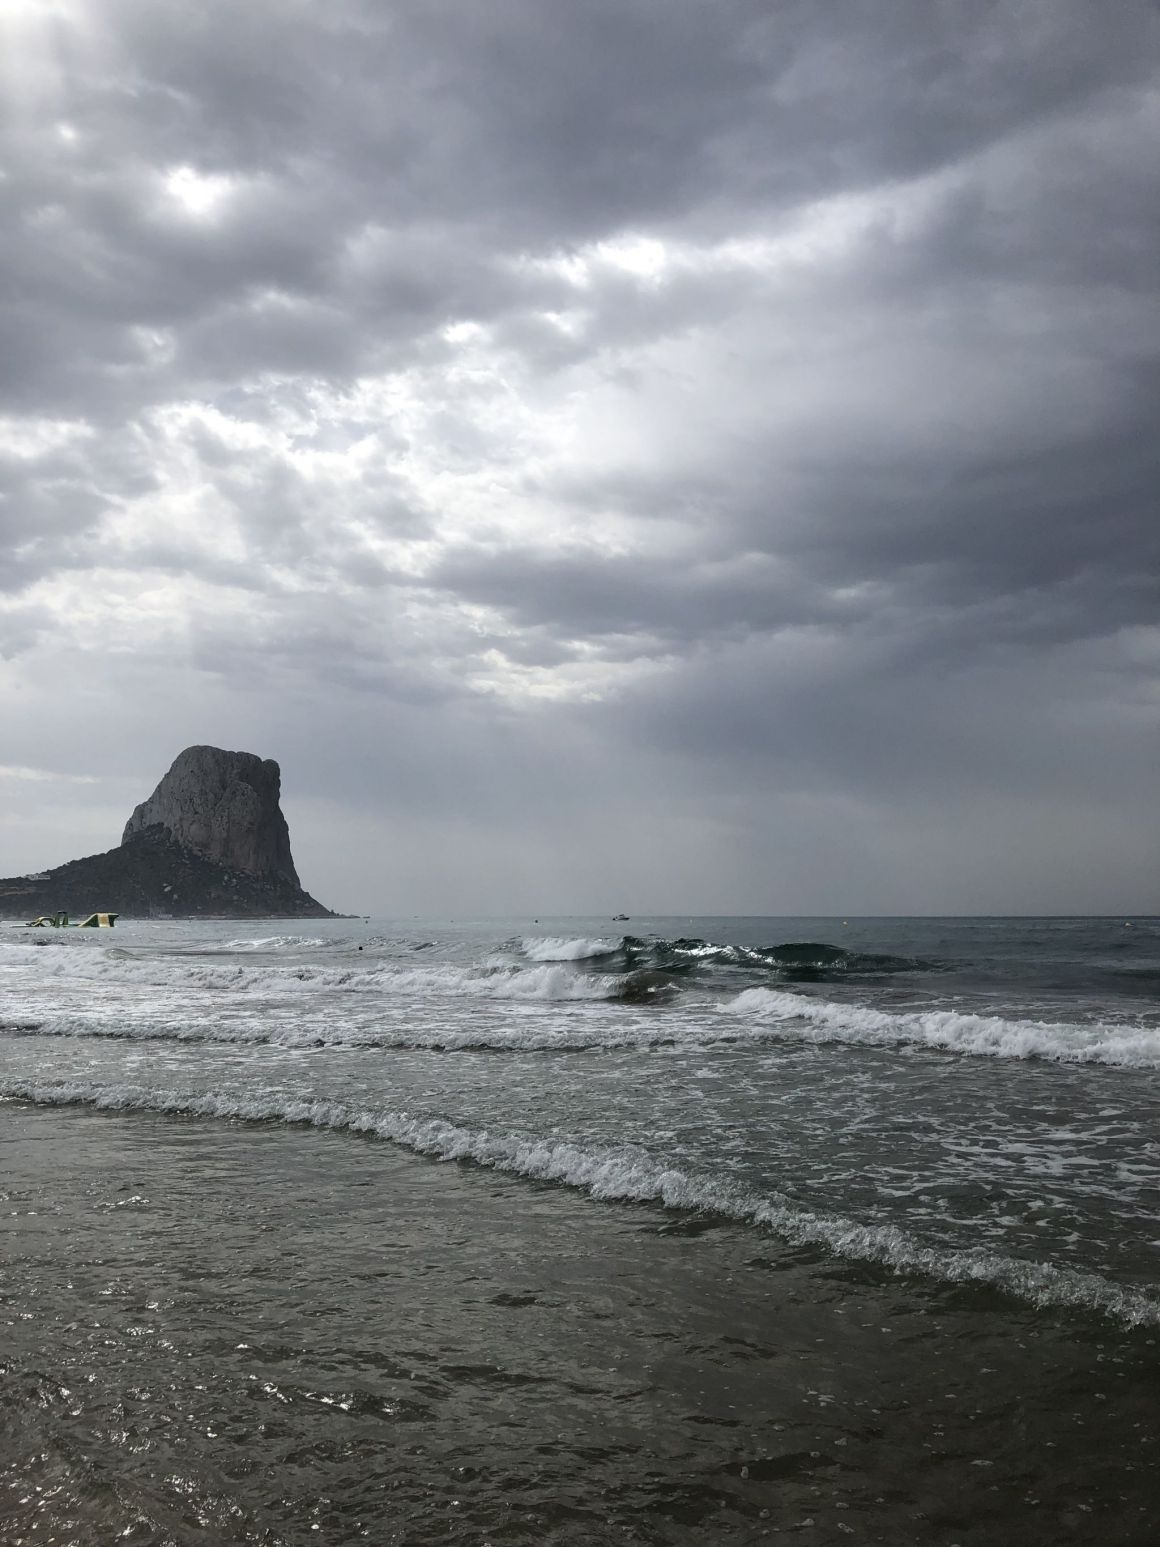 Playa Arenal-Bol, and Calpe rockCalpe